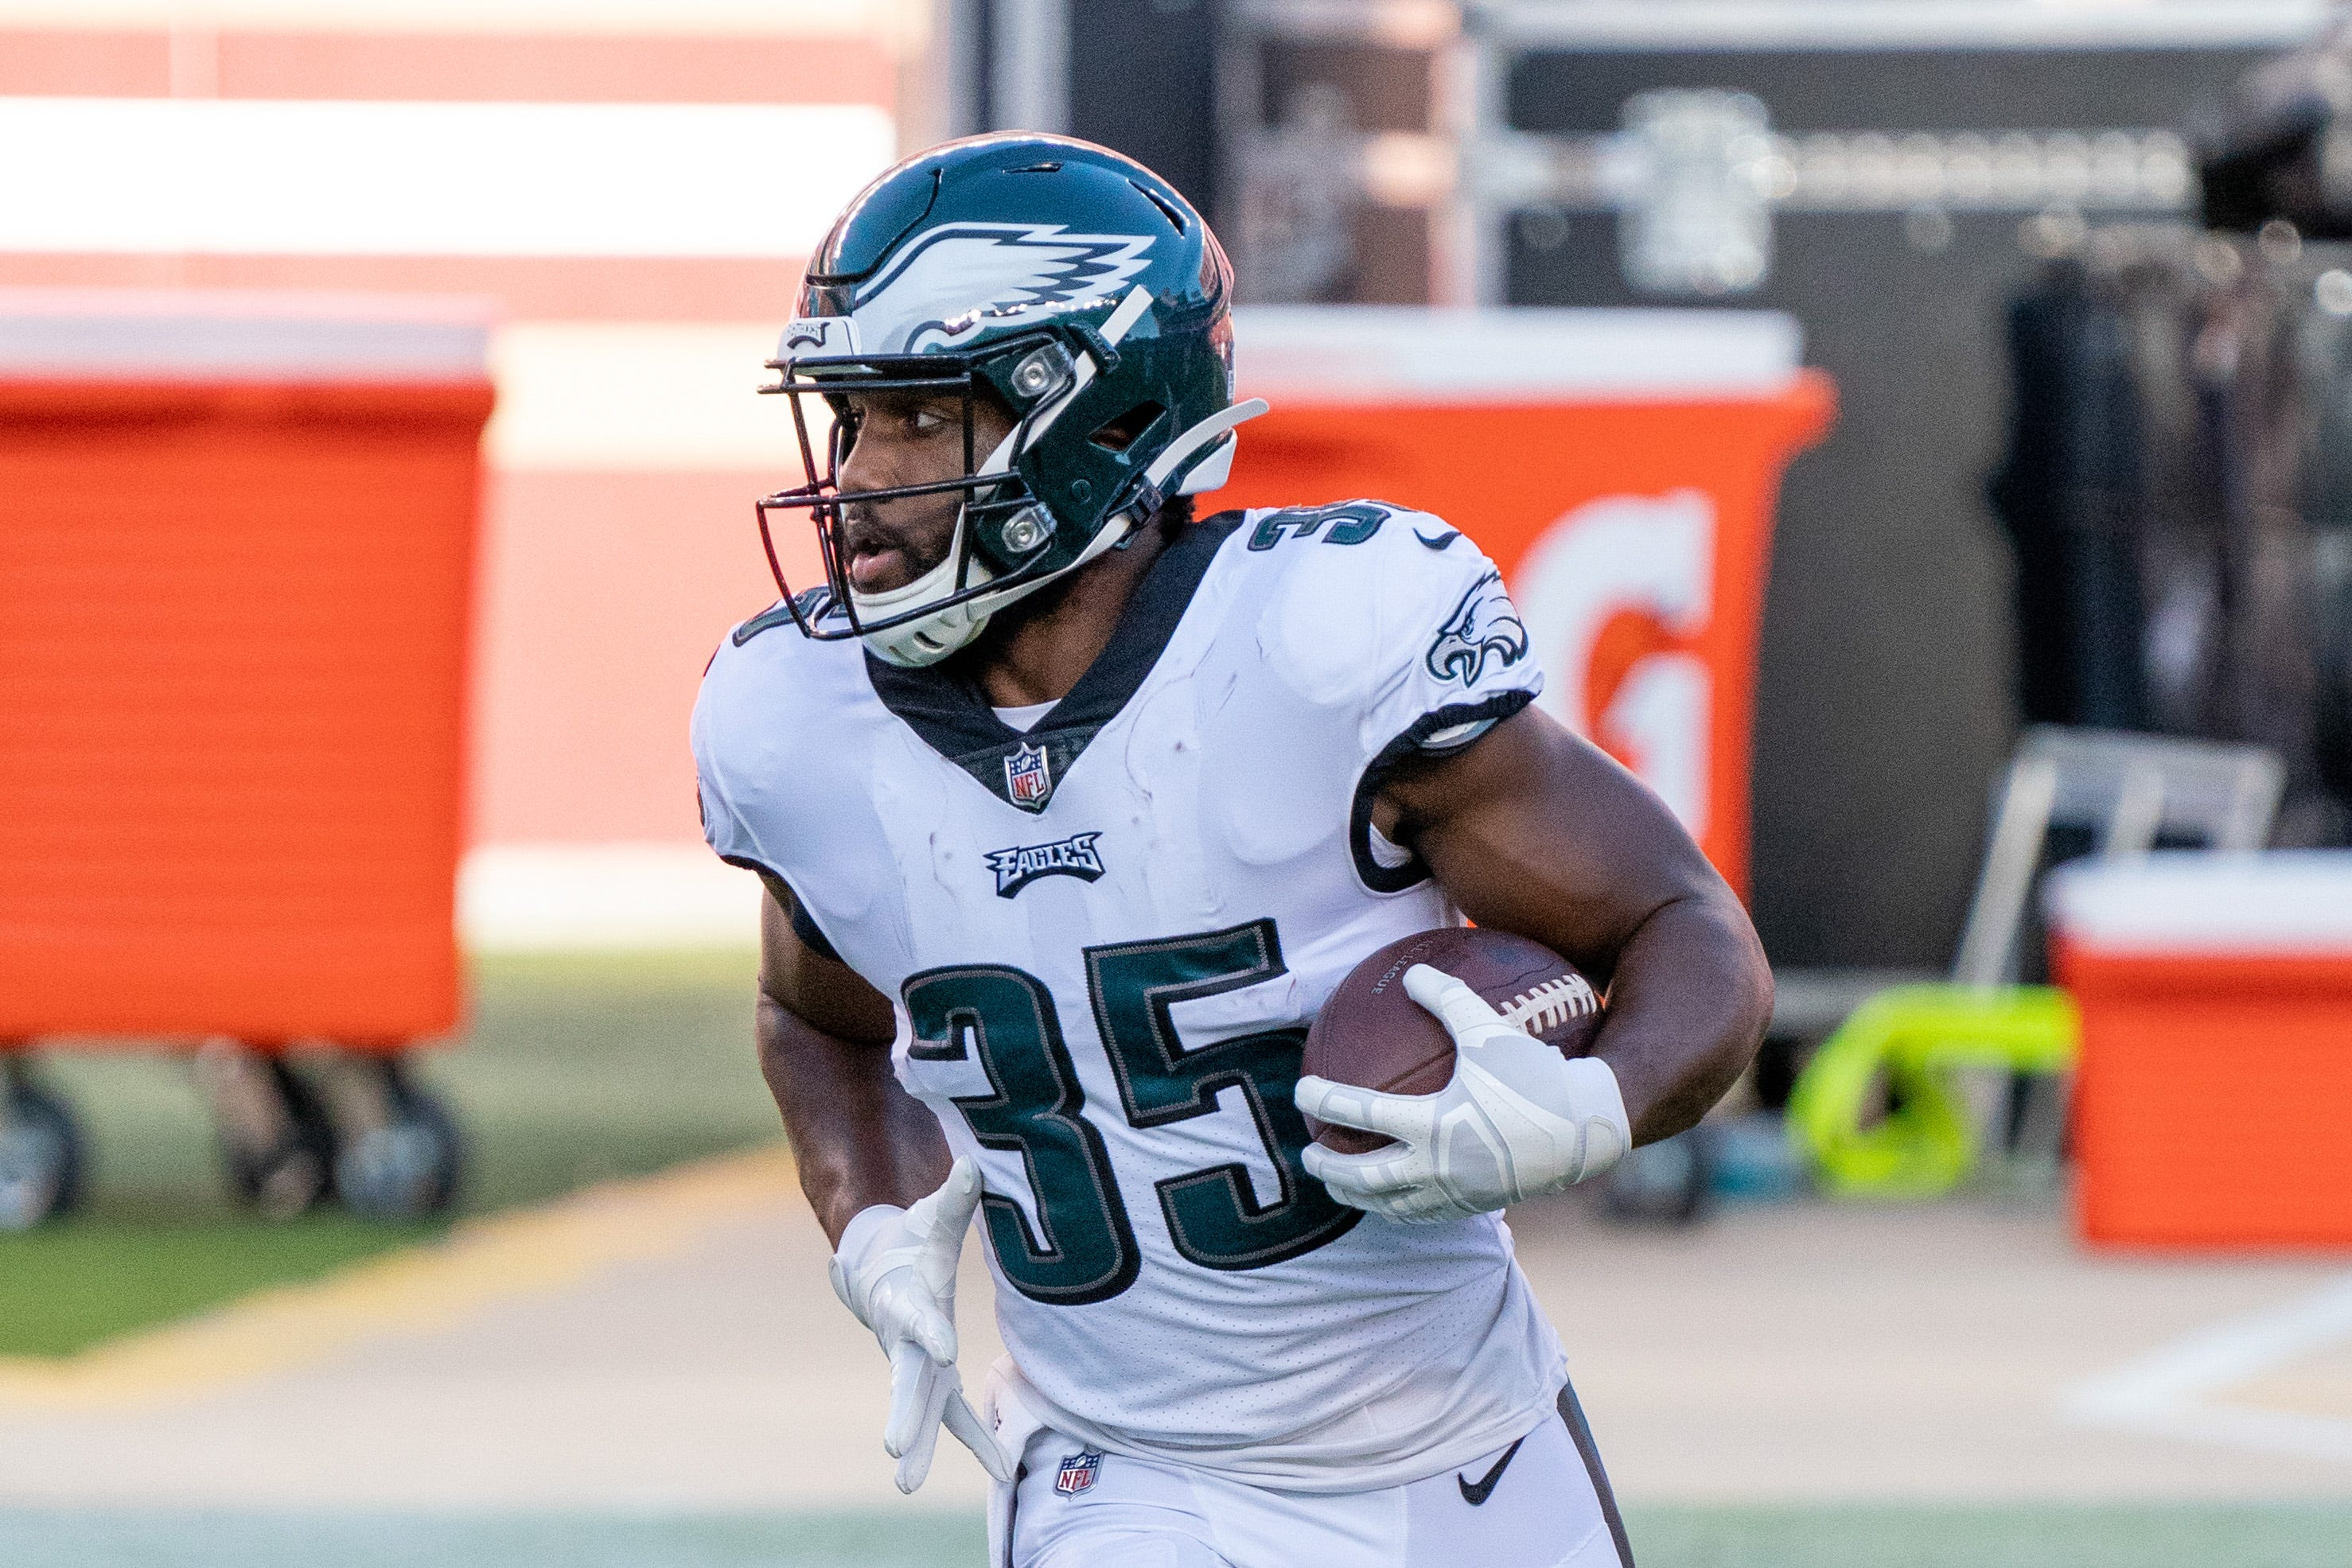 Fantasy football waiver wire: Eagles' Boston Scott poised to assume starting role in Week 7